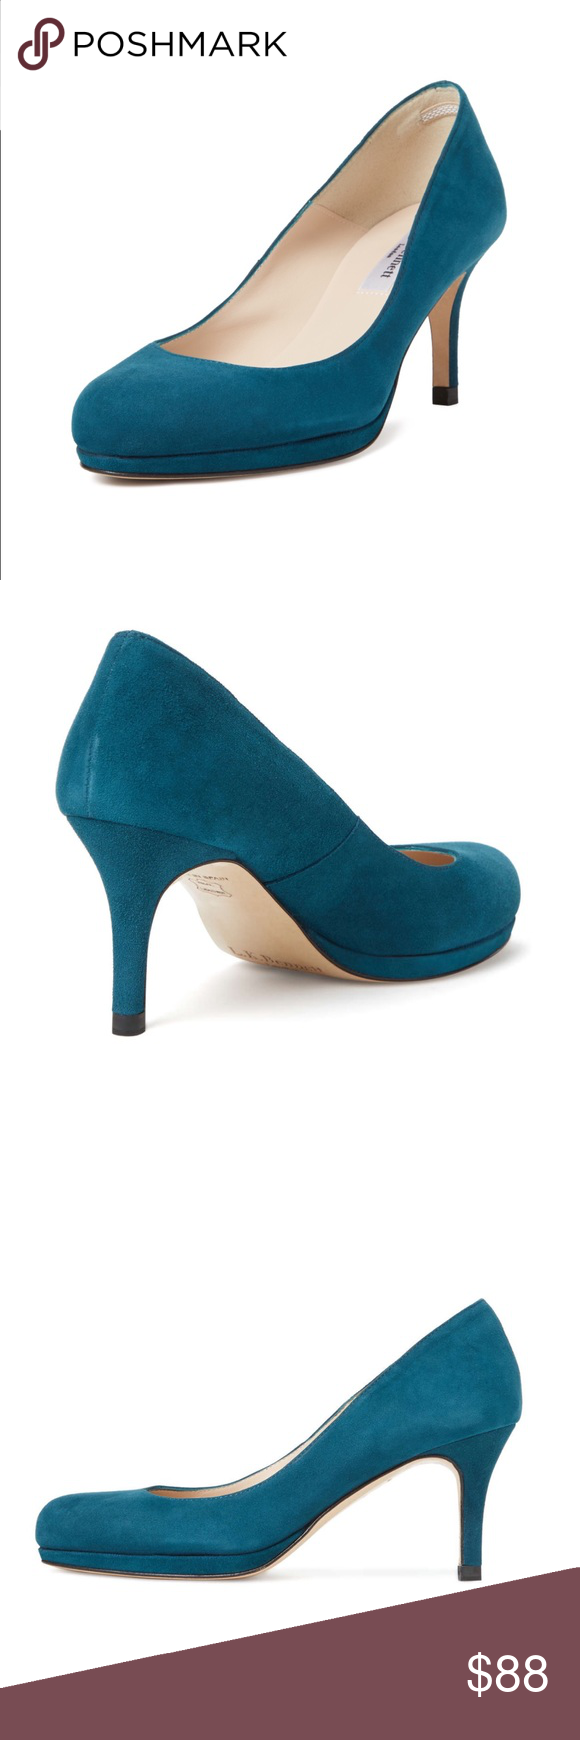 "NEW LK Bennett ""Sybila' suede pump! Sz 41 Gorgeous suede peacock blue LK Bennett Sybila pumps. New excellent condition.  Covered heel Leather insole and sole Measurements: Heel height 3"", platform sole ½""  Brand: L.K.Bennett  Origin: Spain LK Bennett Shoes Heels"